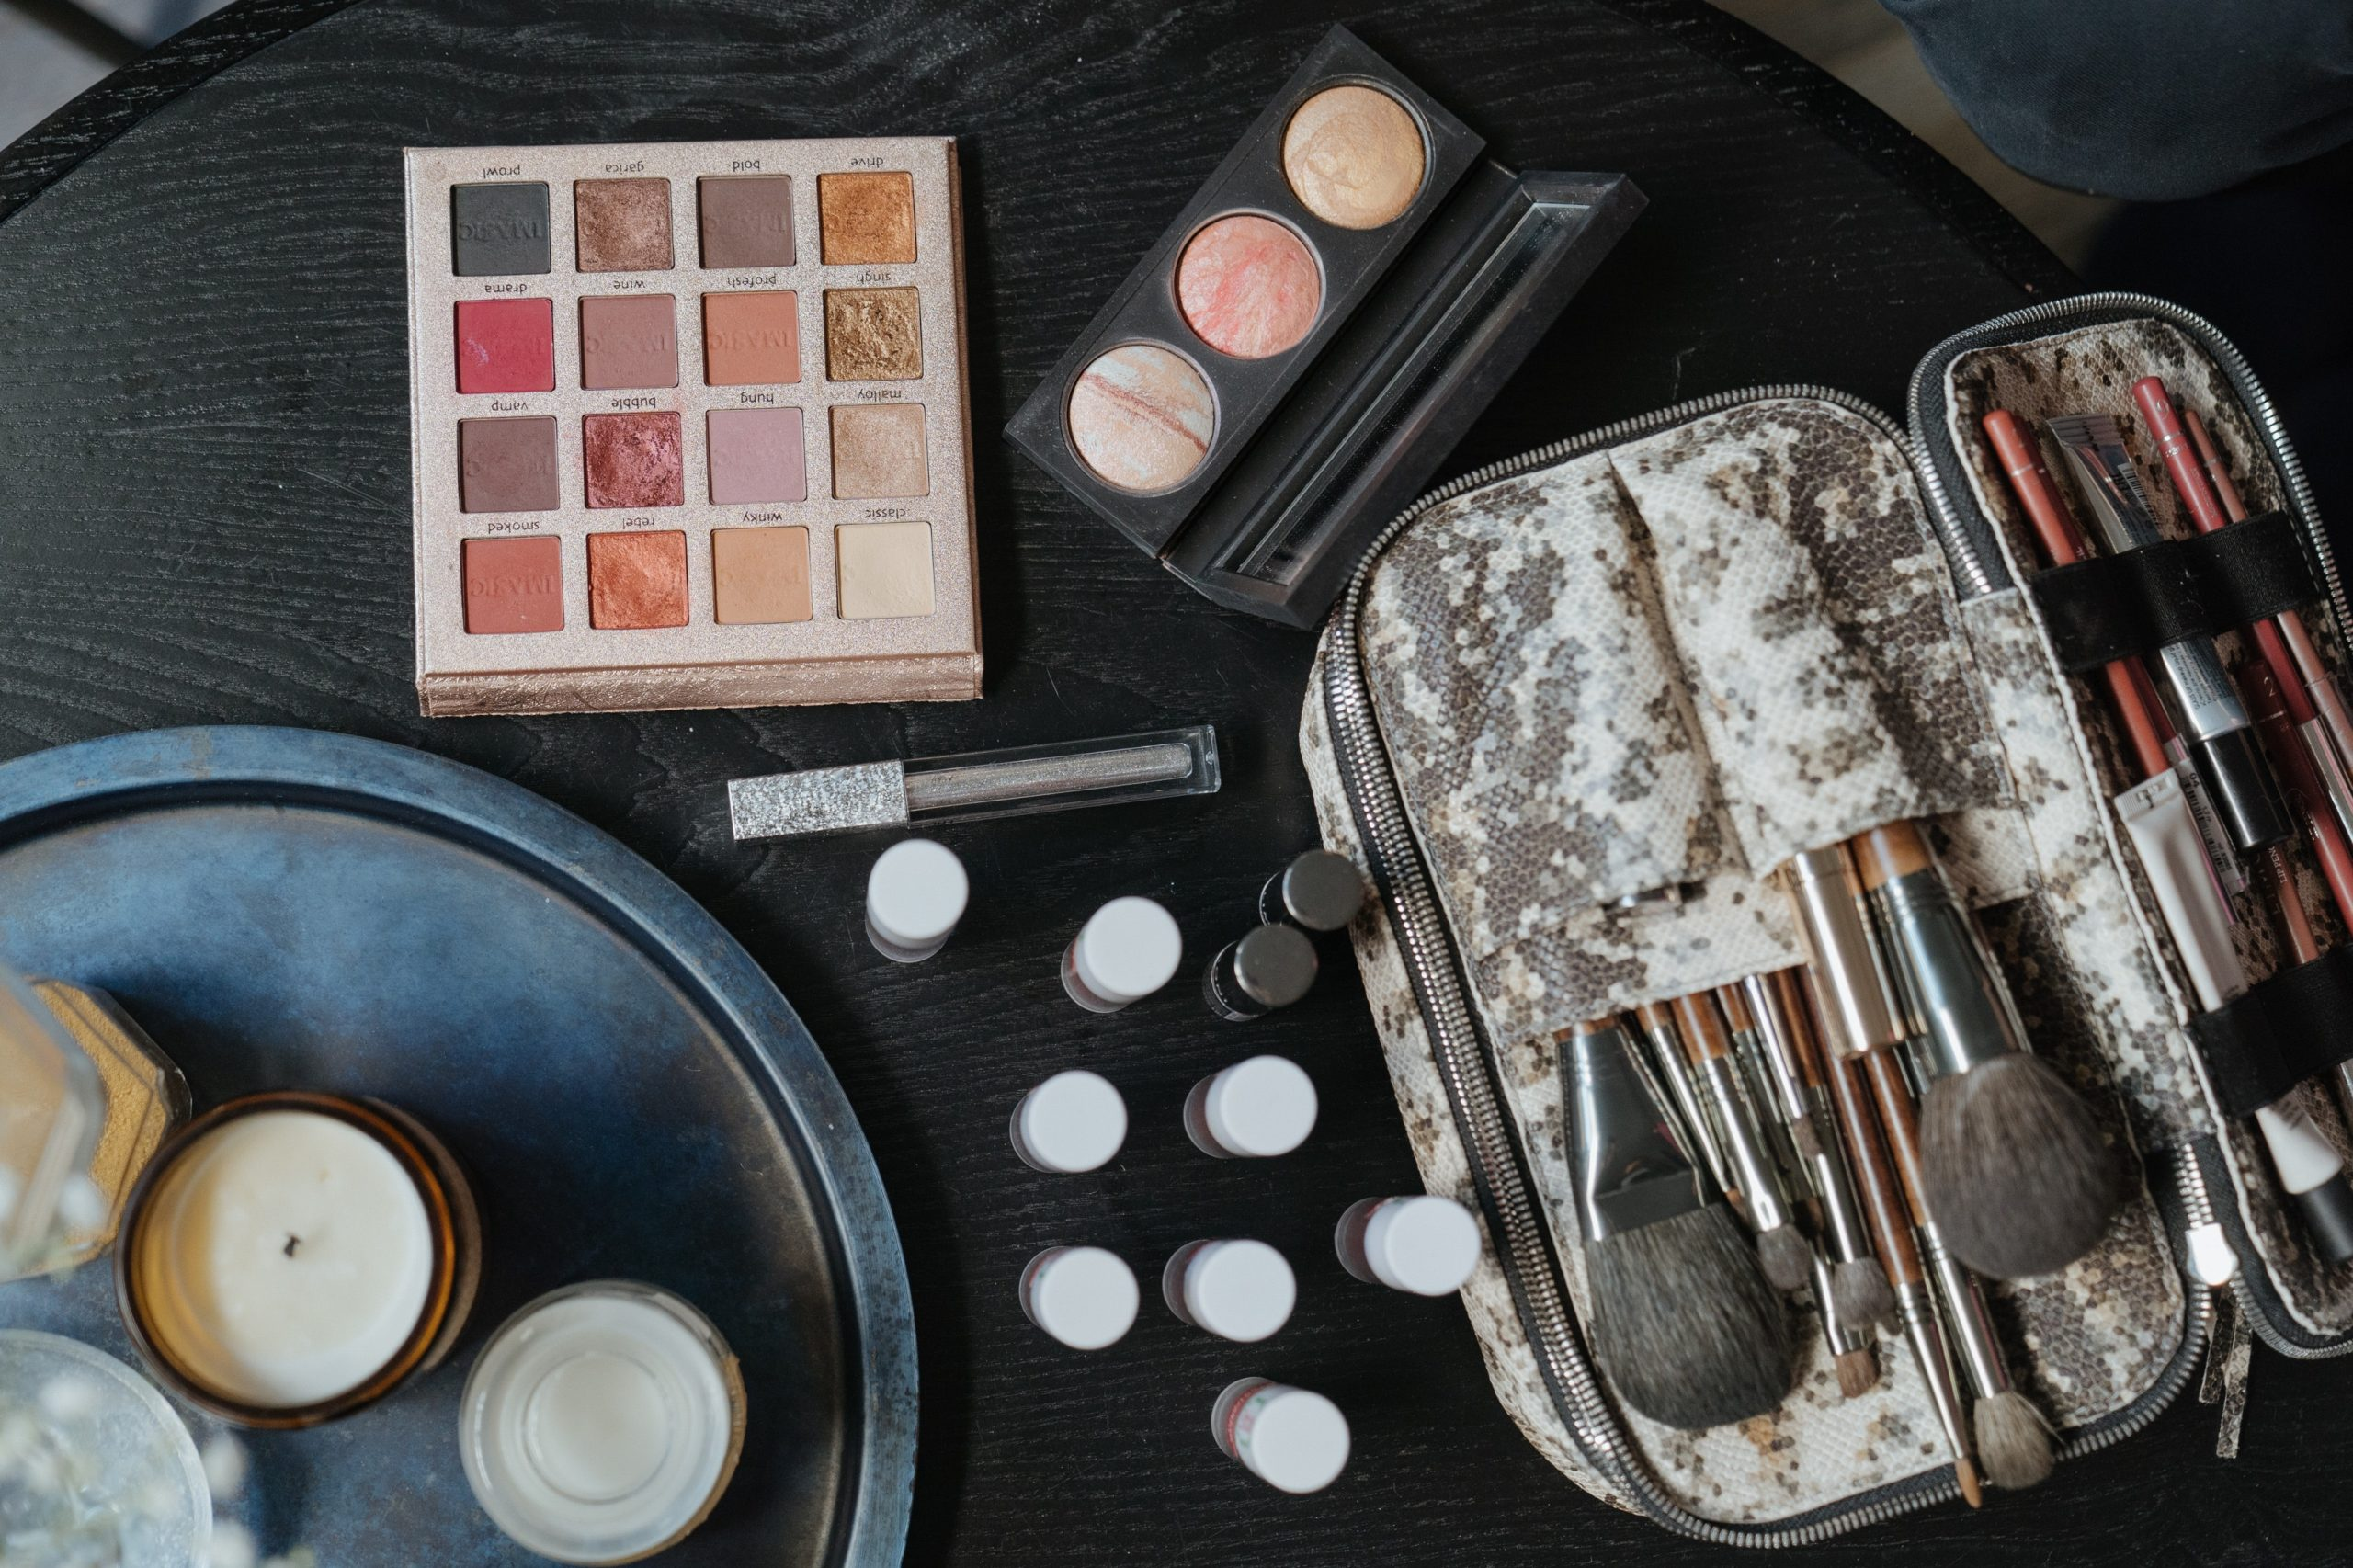 Basic Makeup Kit for a Beginners on a Budget